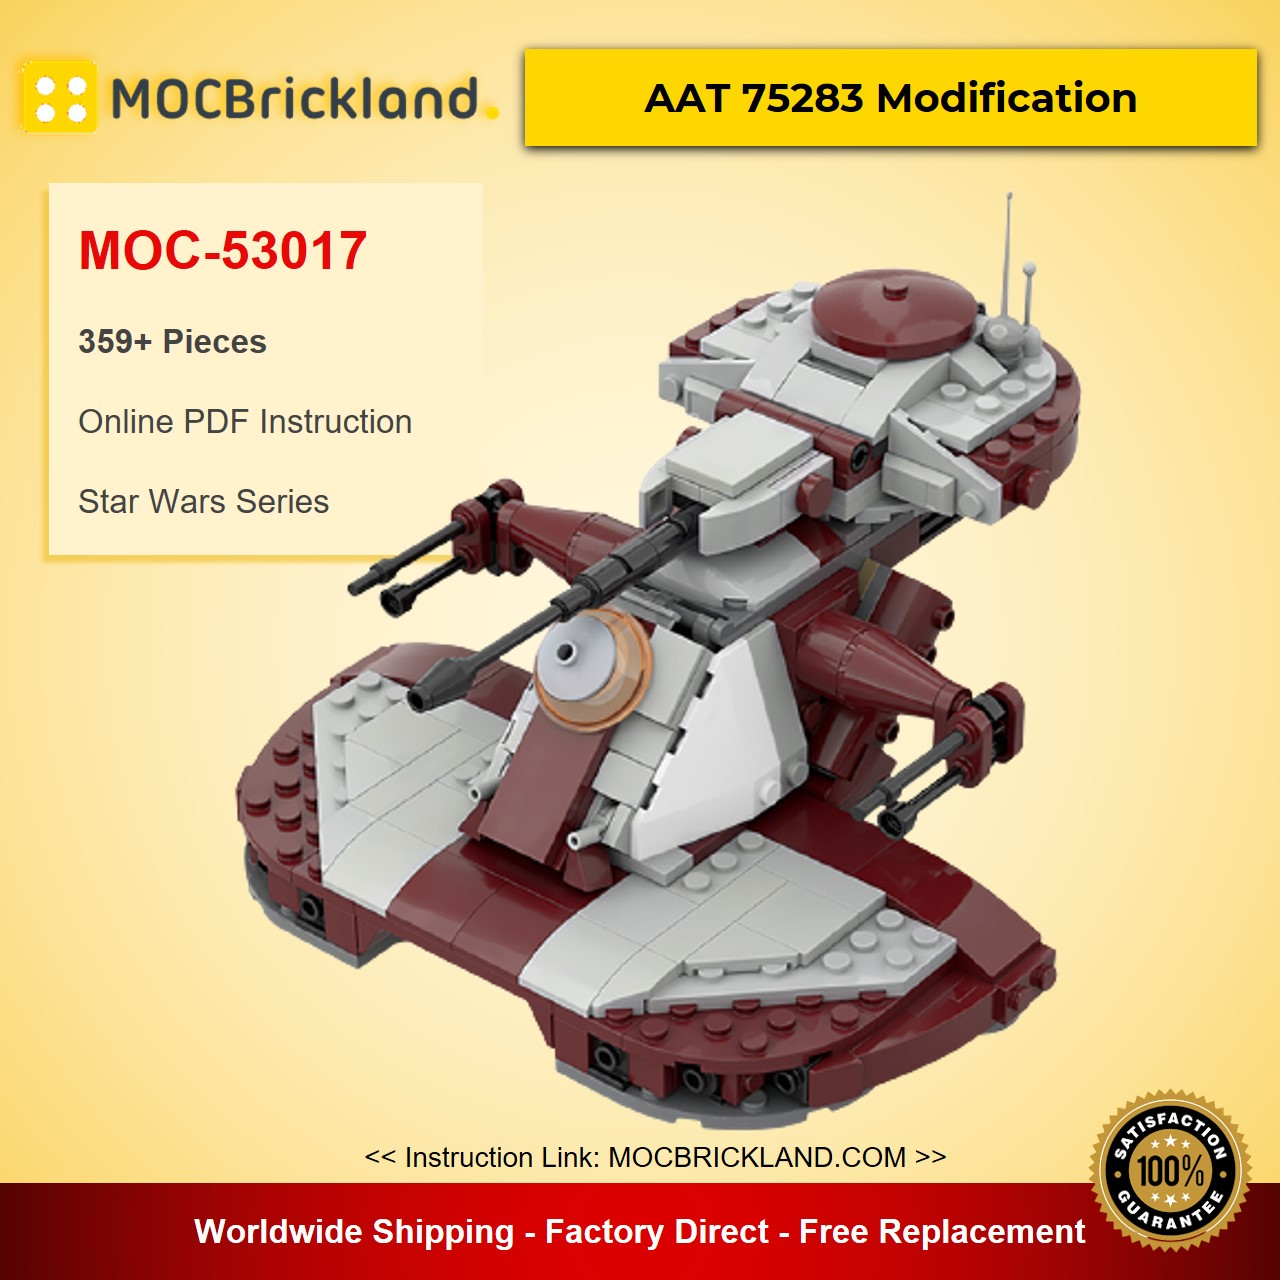 AAT 75283 Modification MOC-53017 Star Wars Designed By 2bricksofficial With 359 Pieces